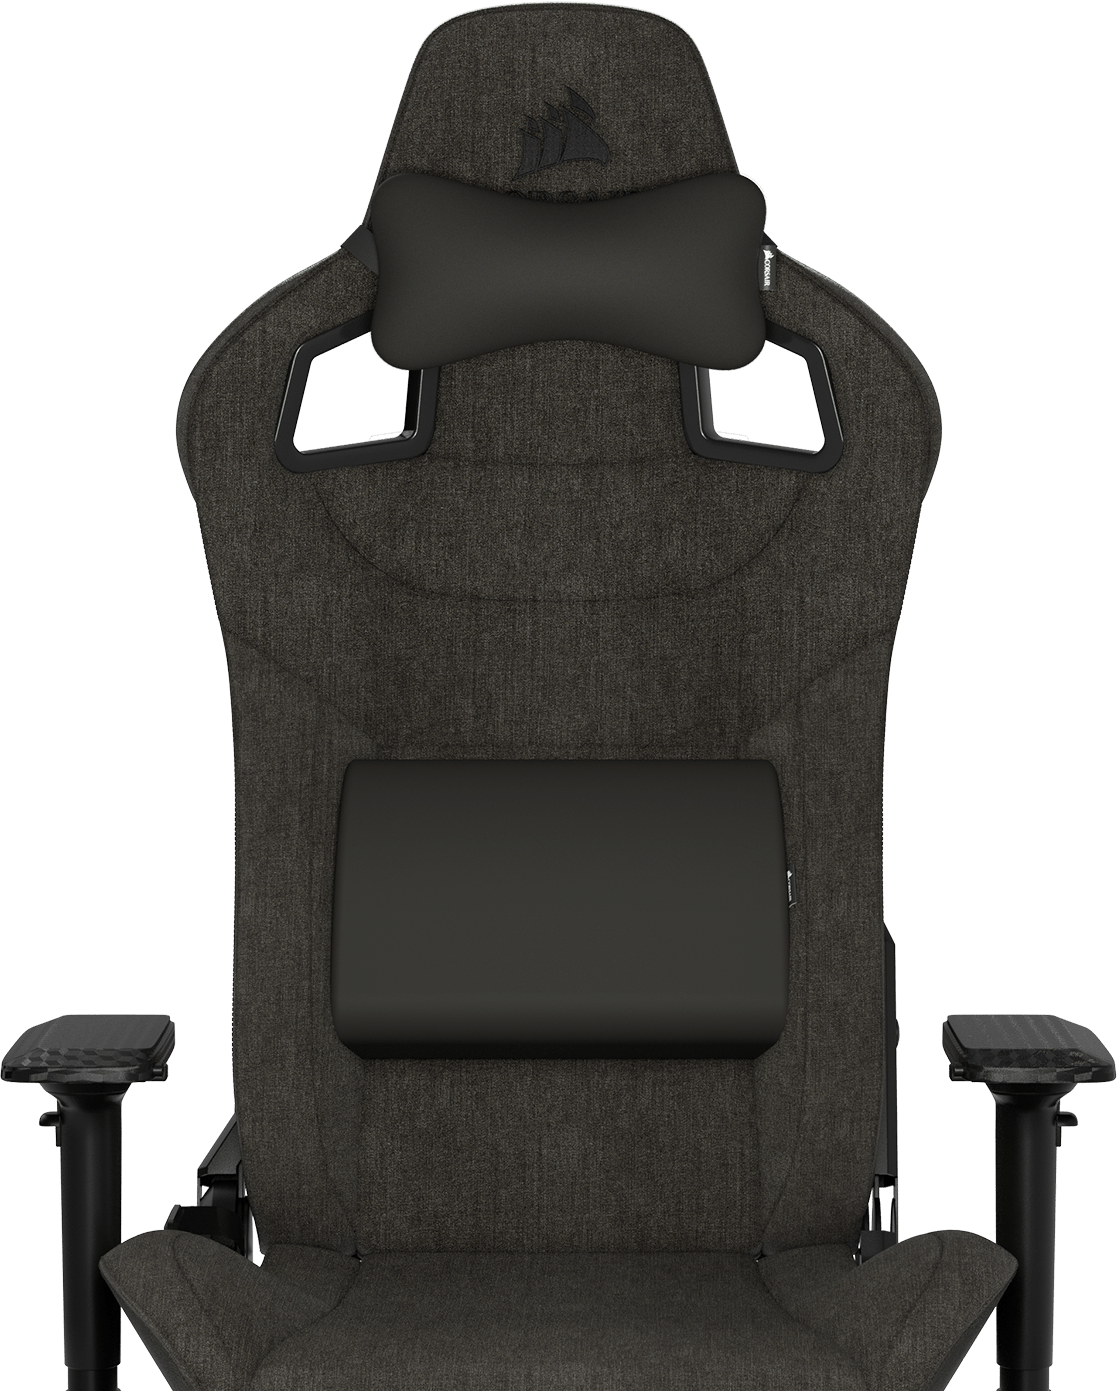 T3 RUSH - LUMBAR SUPPORT